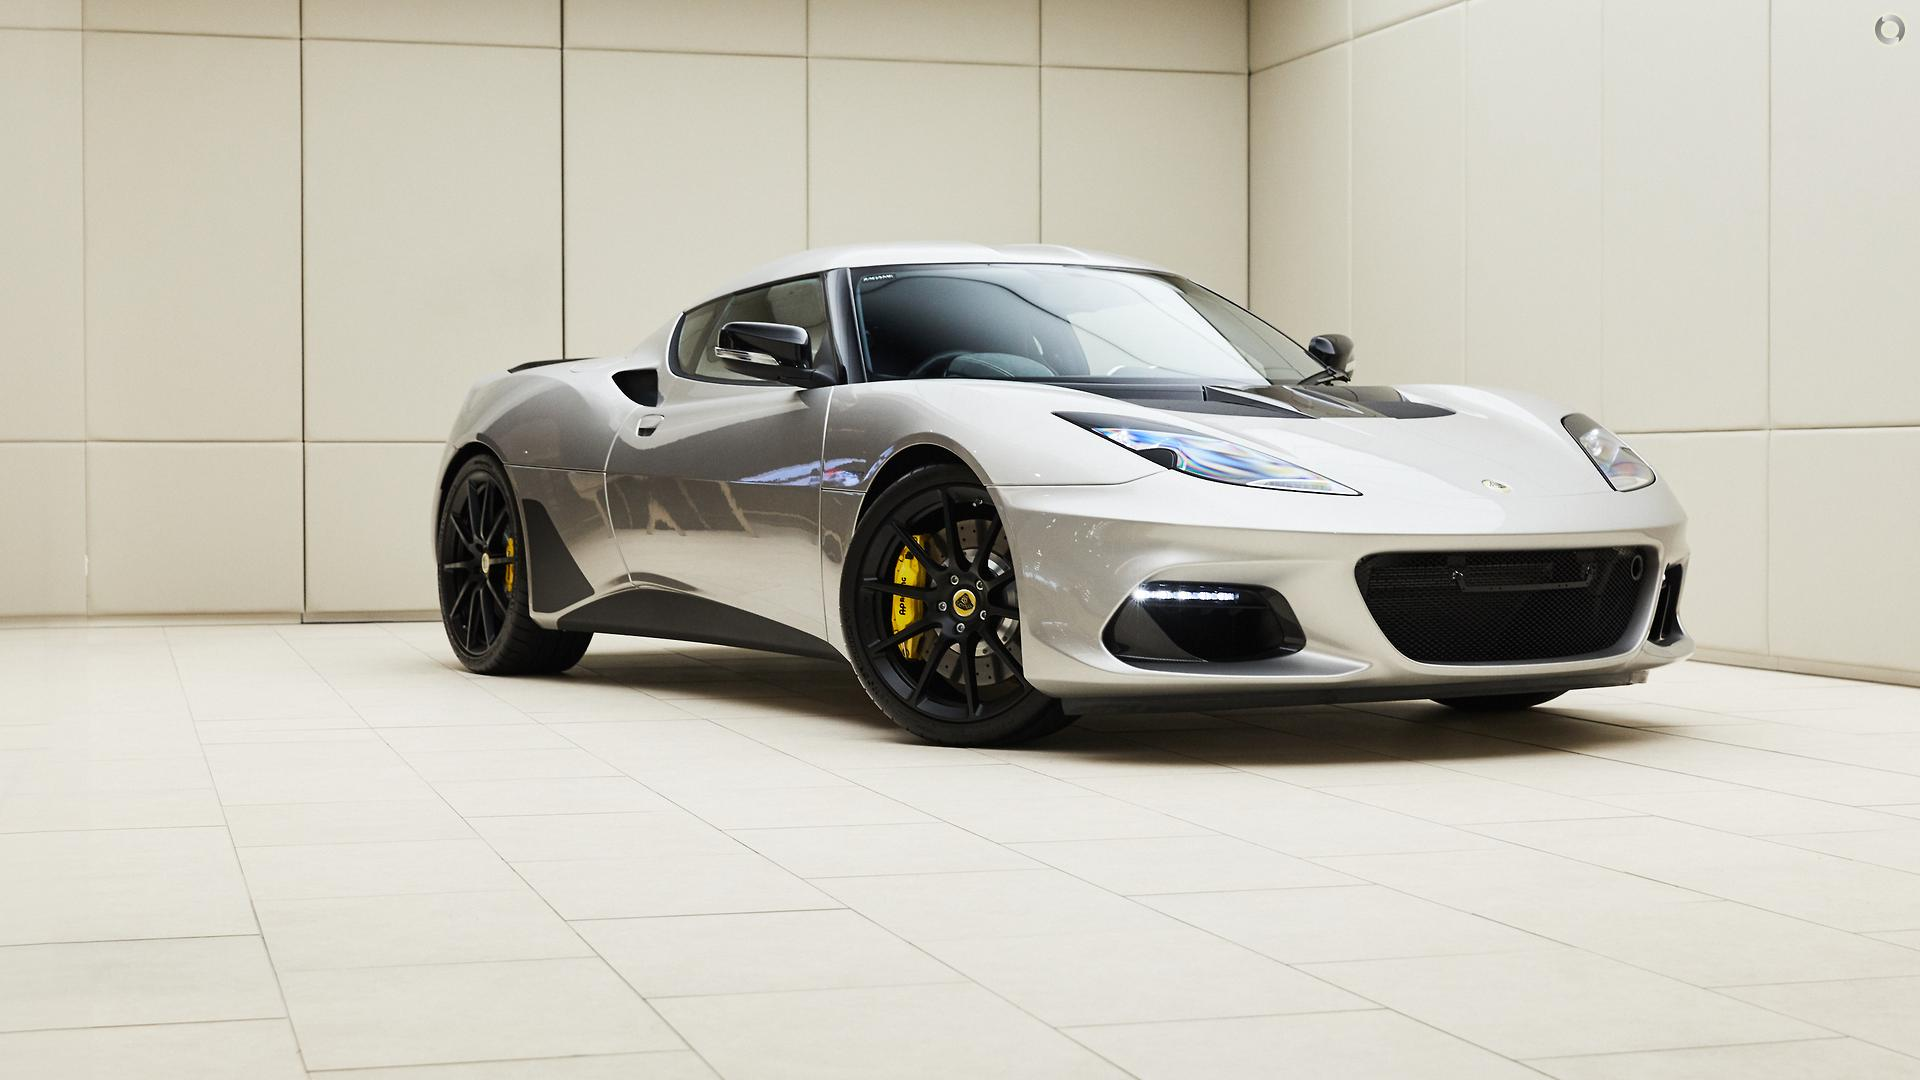 2019 Lotus Evora Type 122